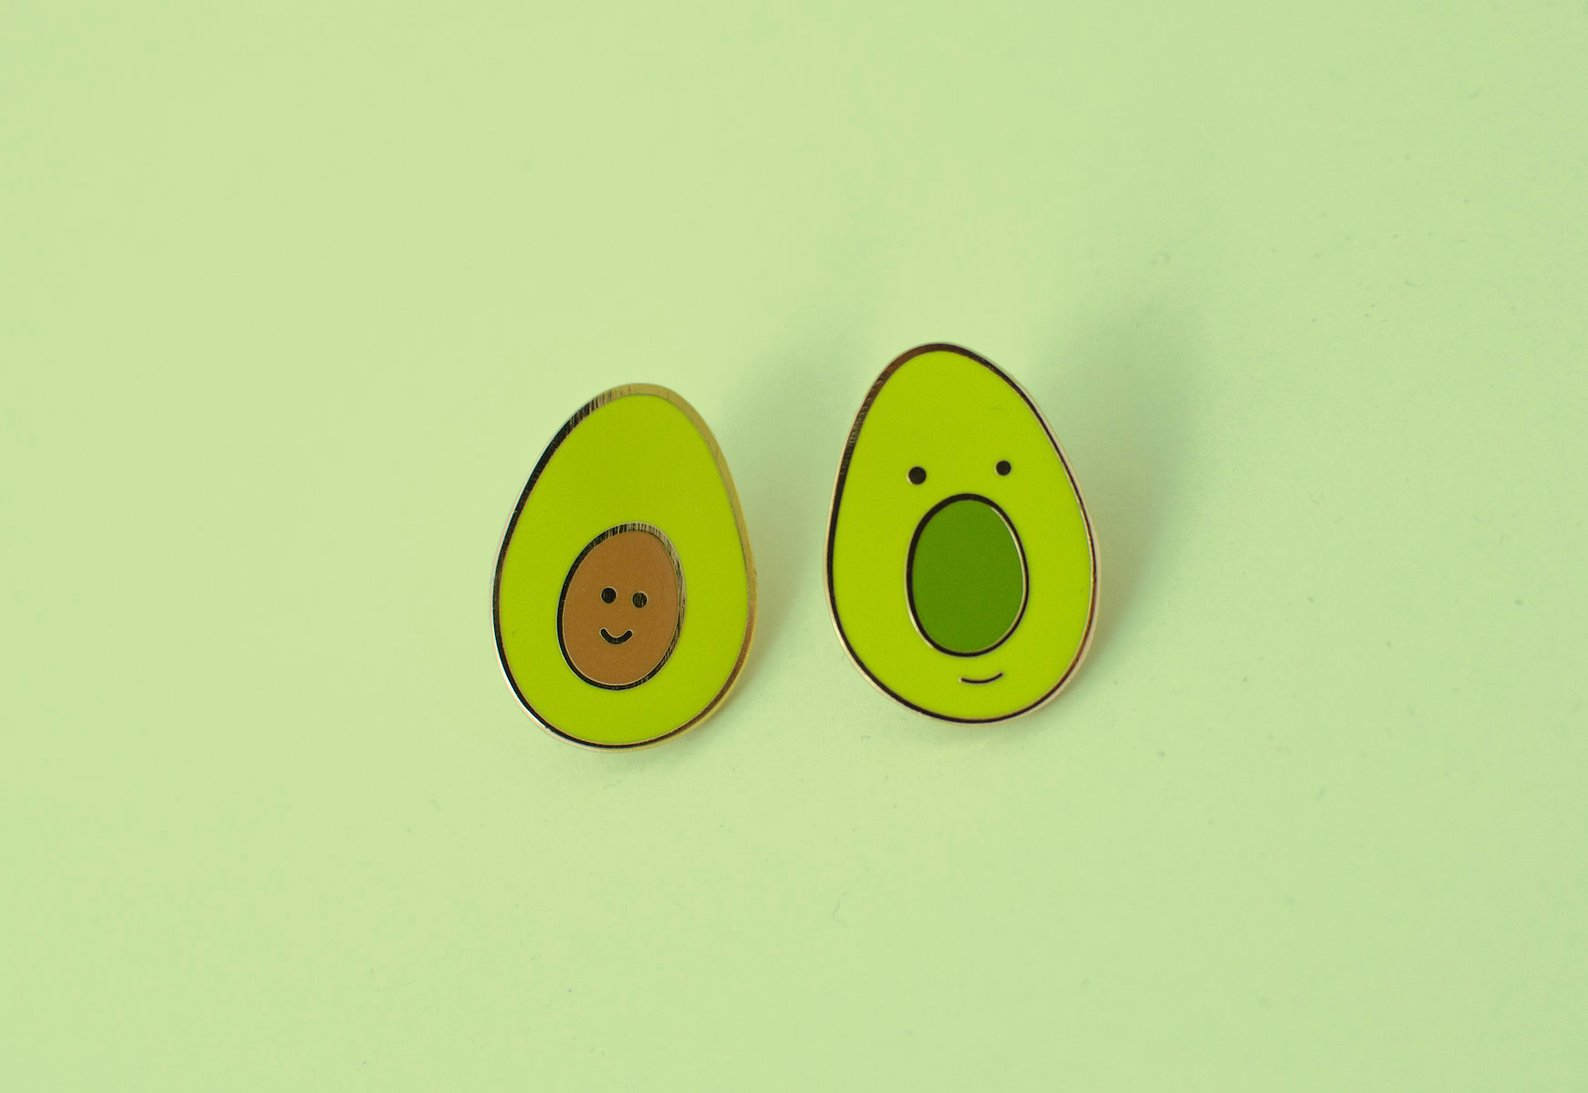 Avocado Enamel Pin By Itscathywu